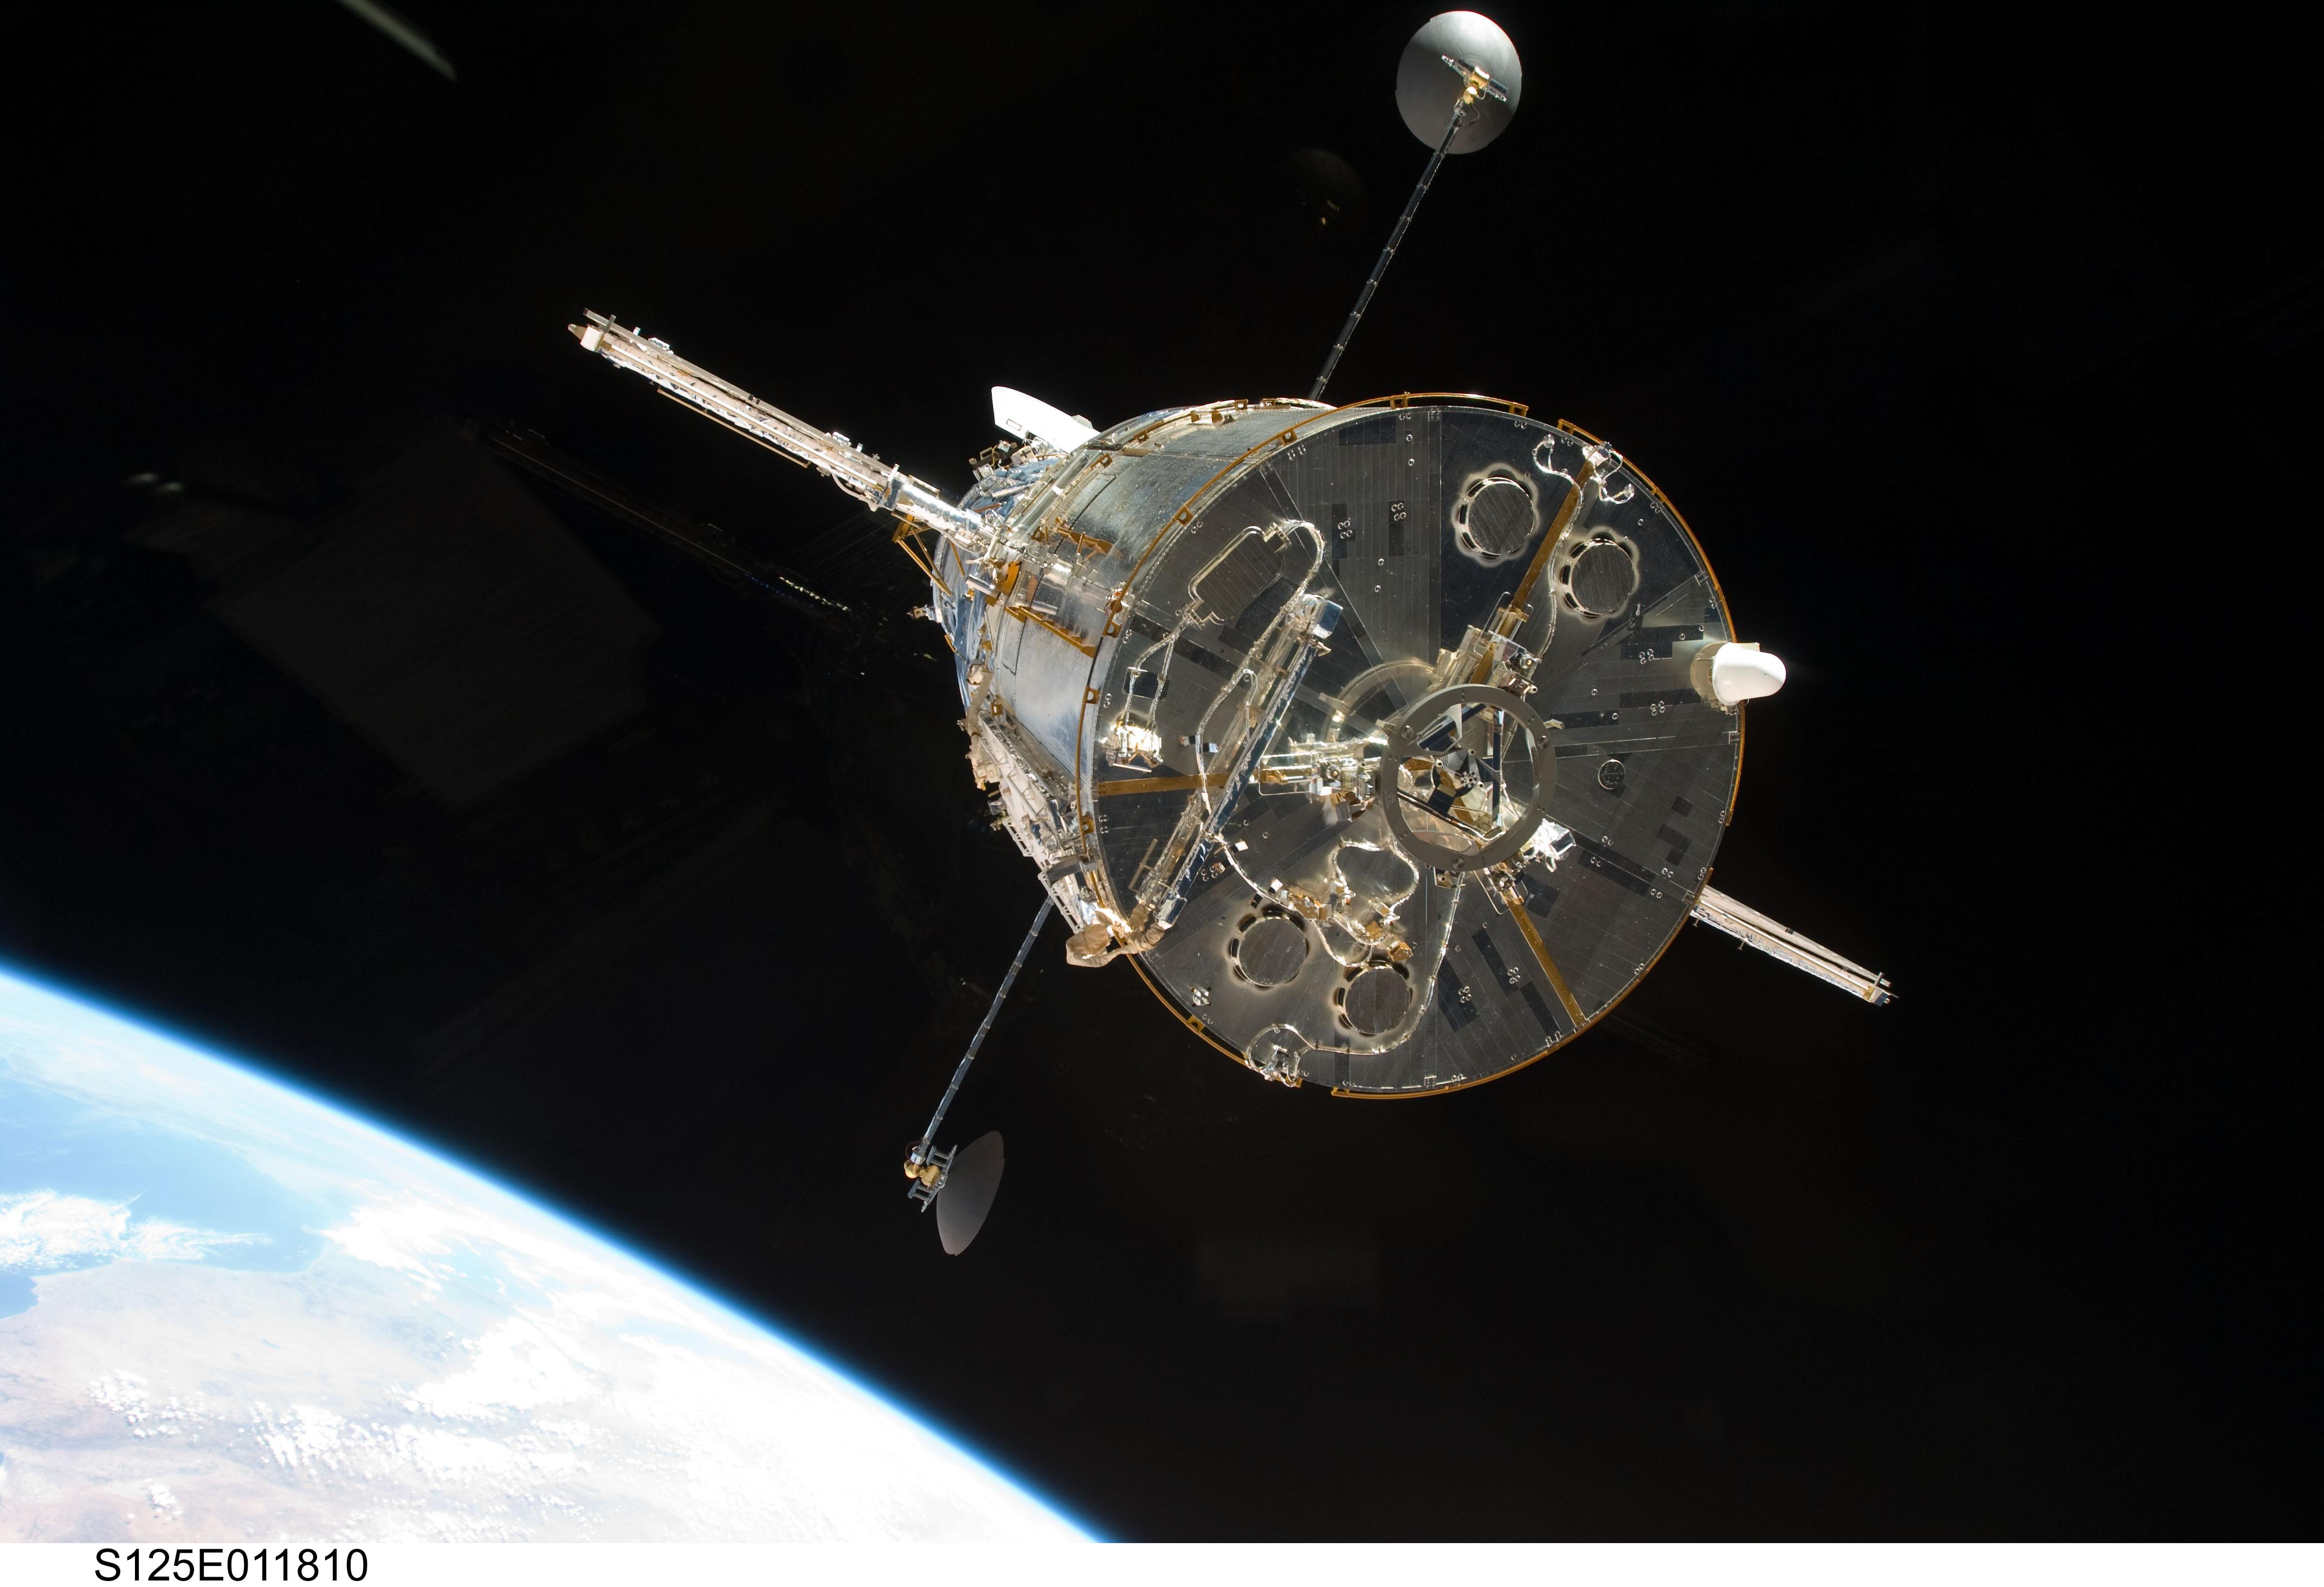 nasa discovery missions - photo #41